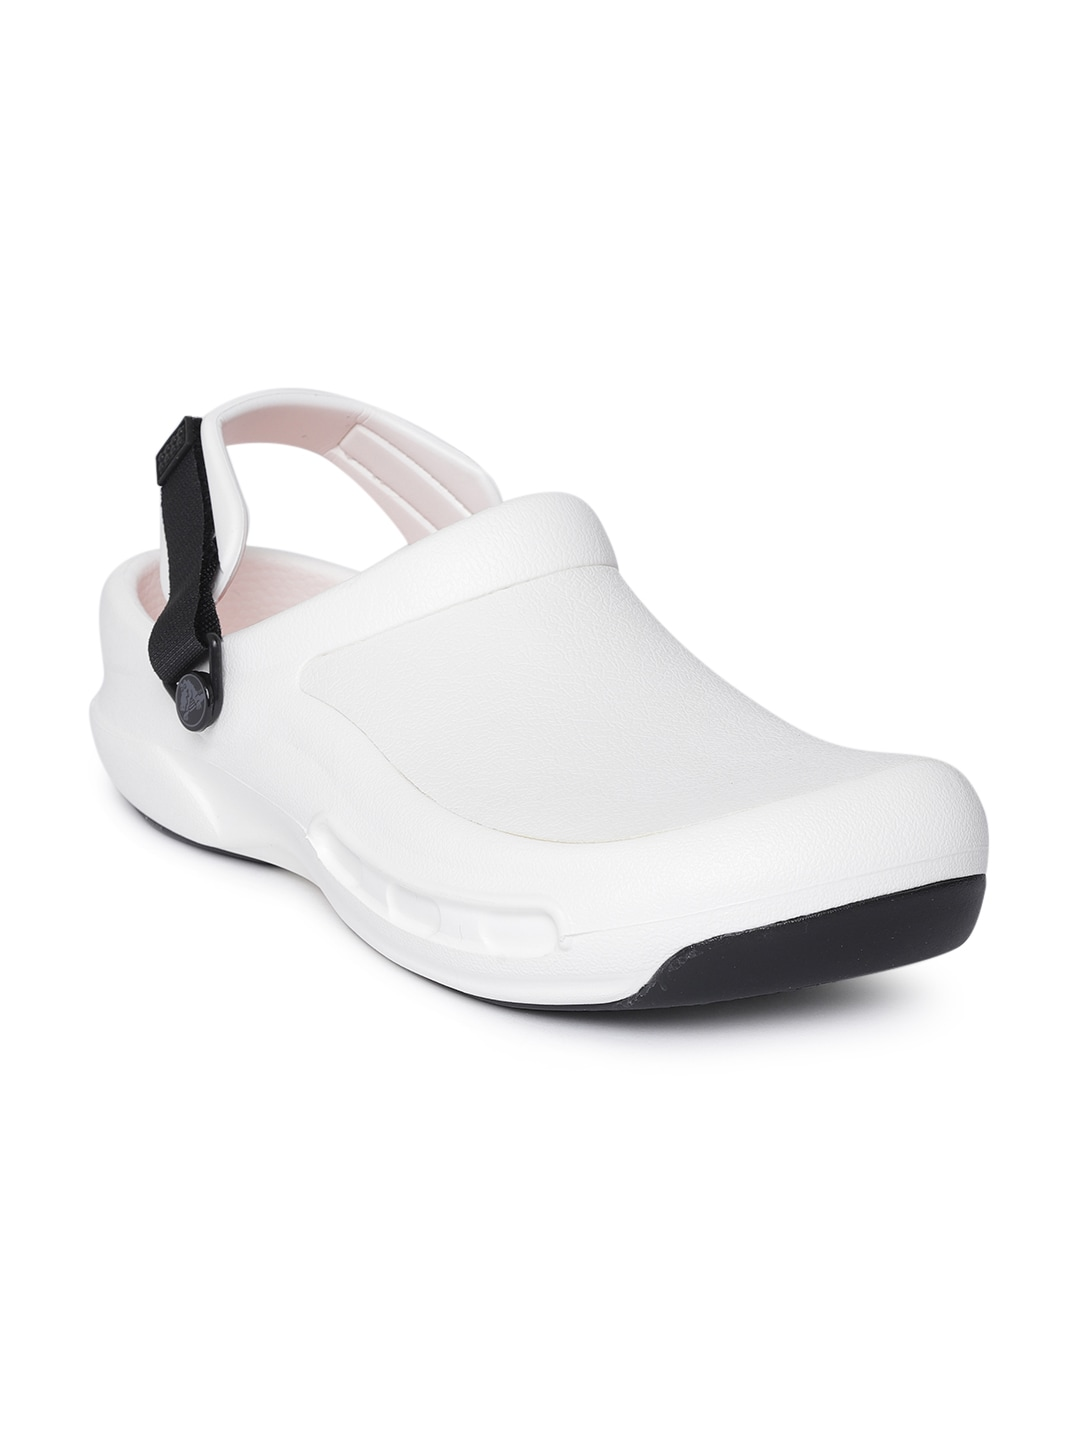 d3f0eb6c0 White Sandals - Buy White Sandals Online in India